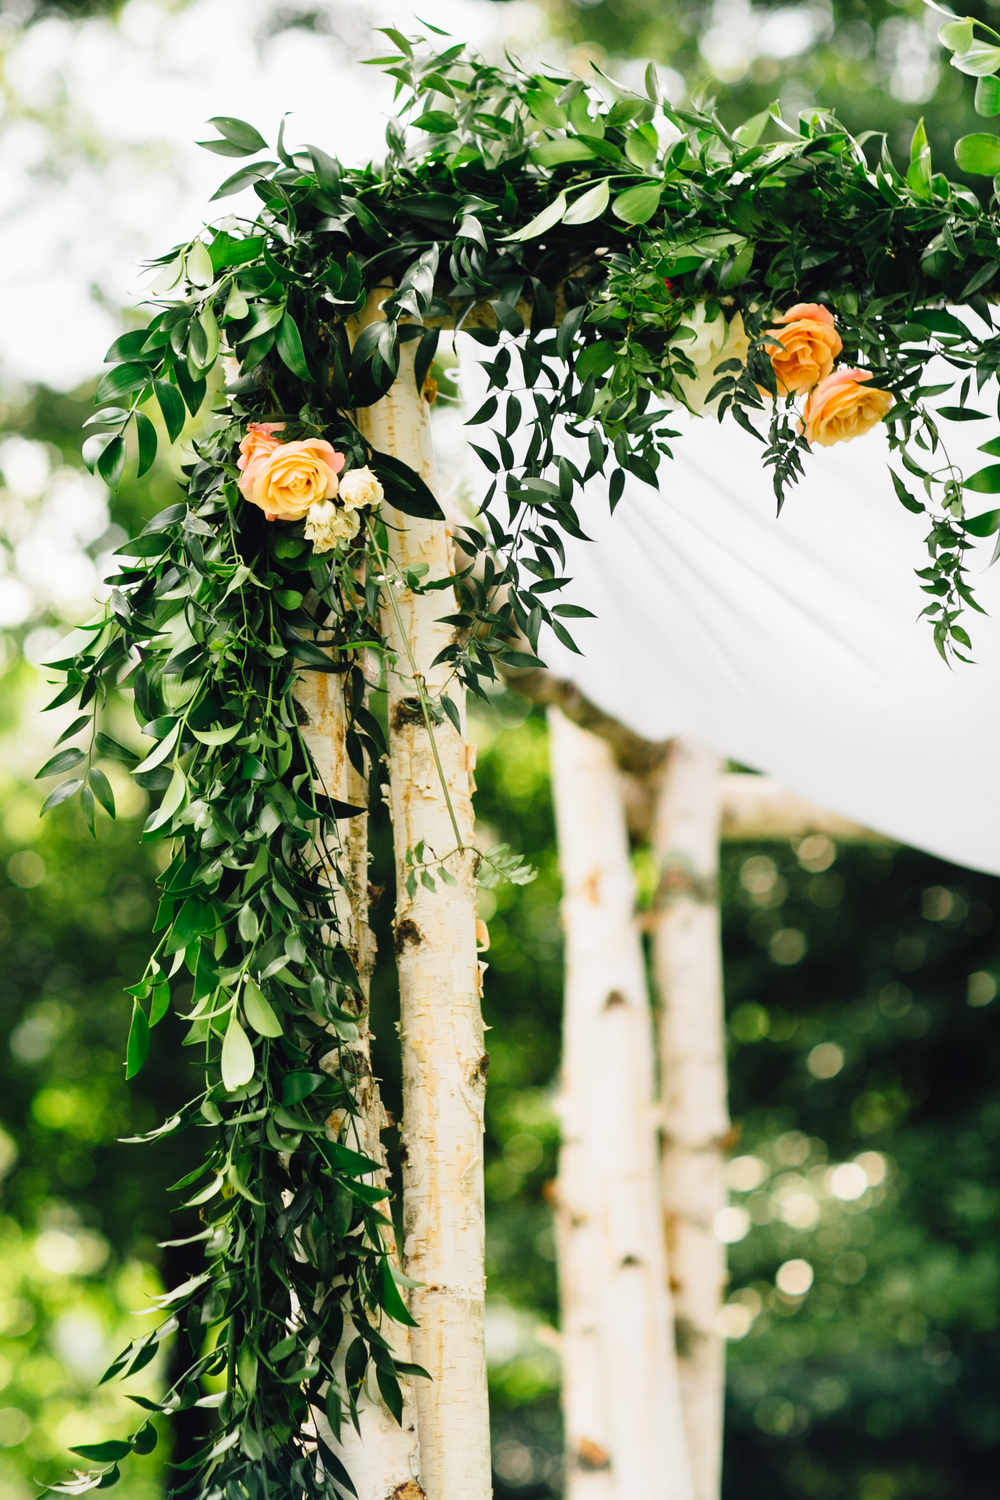 B Floral and Event Design | Full Service Floral and Event Design Company Servicing Maryland, Washington DC, Virginia and Beyond